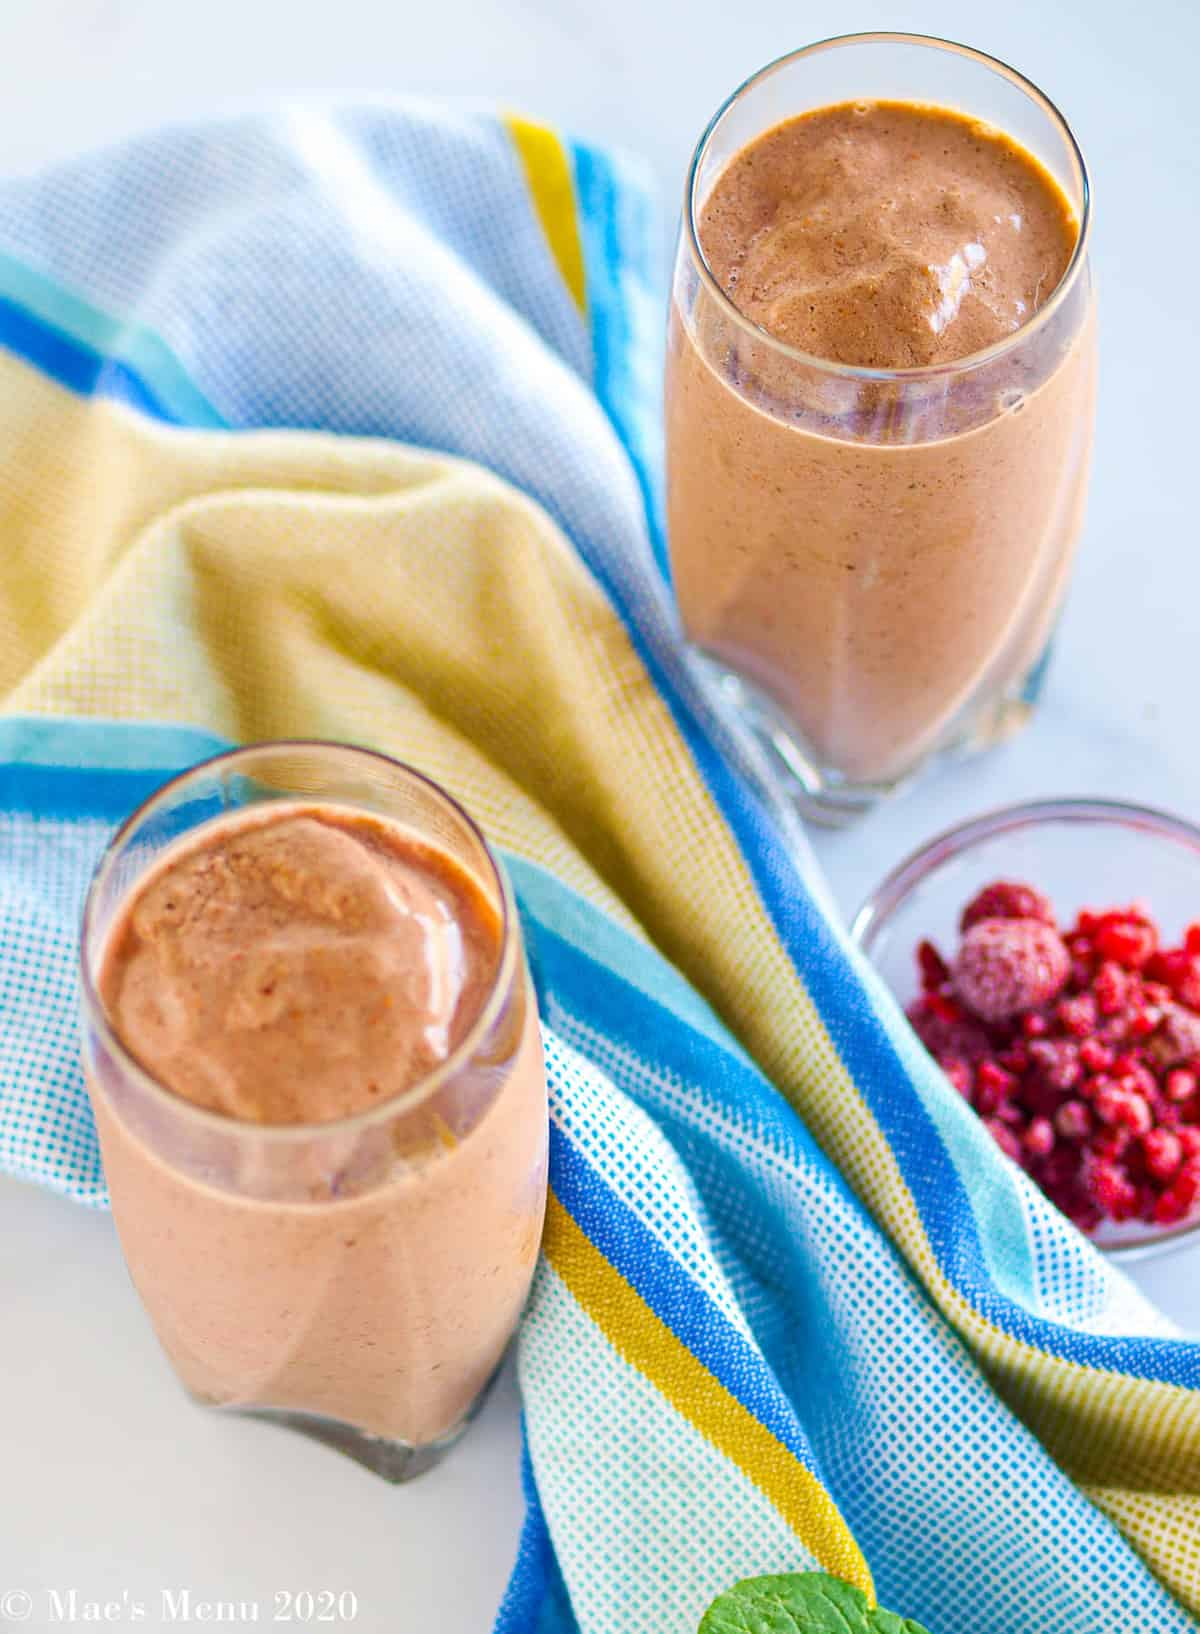 Two large glasses of creamy raspberry smoothie next to a small dish of frozen raspberries. between the glasses sits a blue and yellow dish cloth.